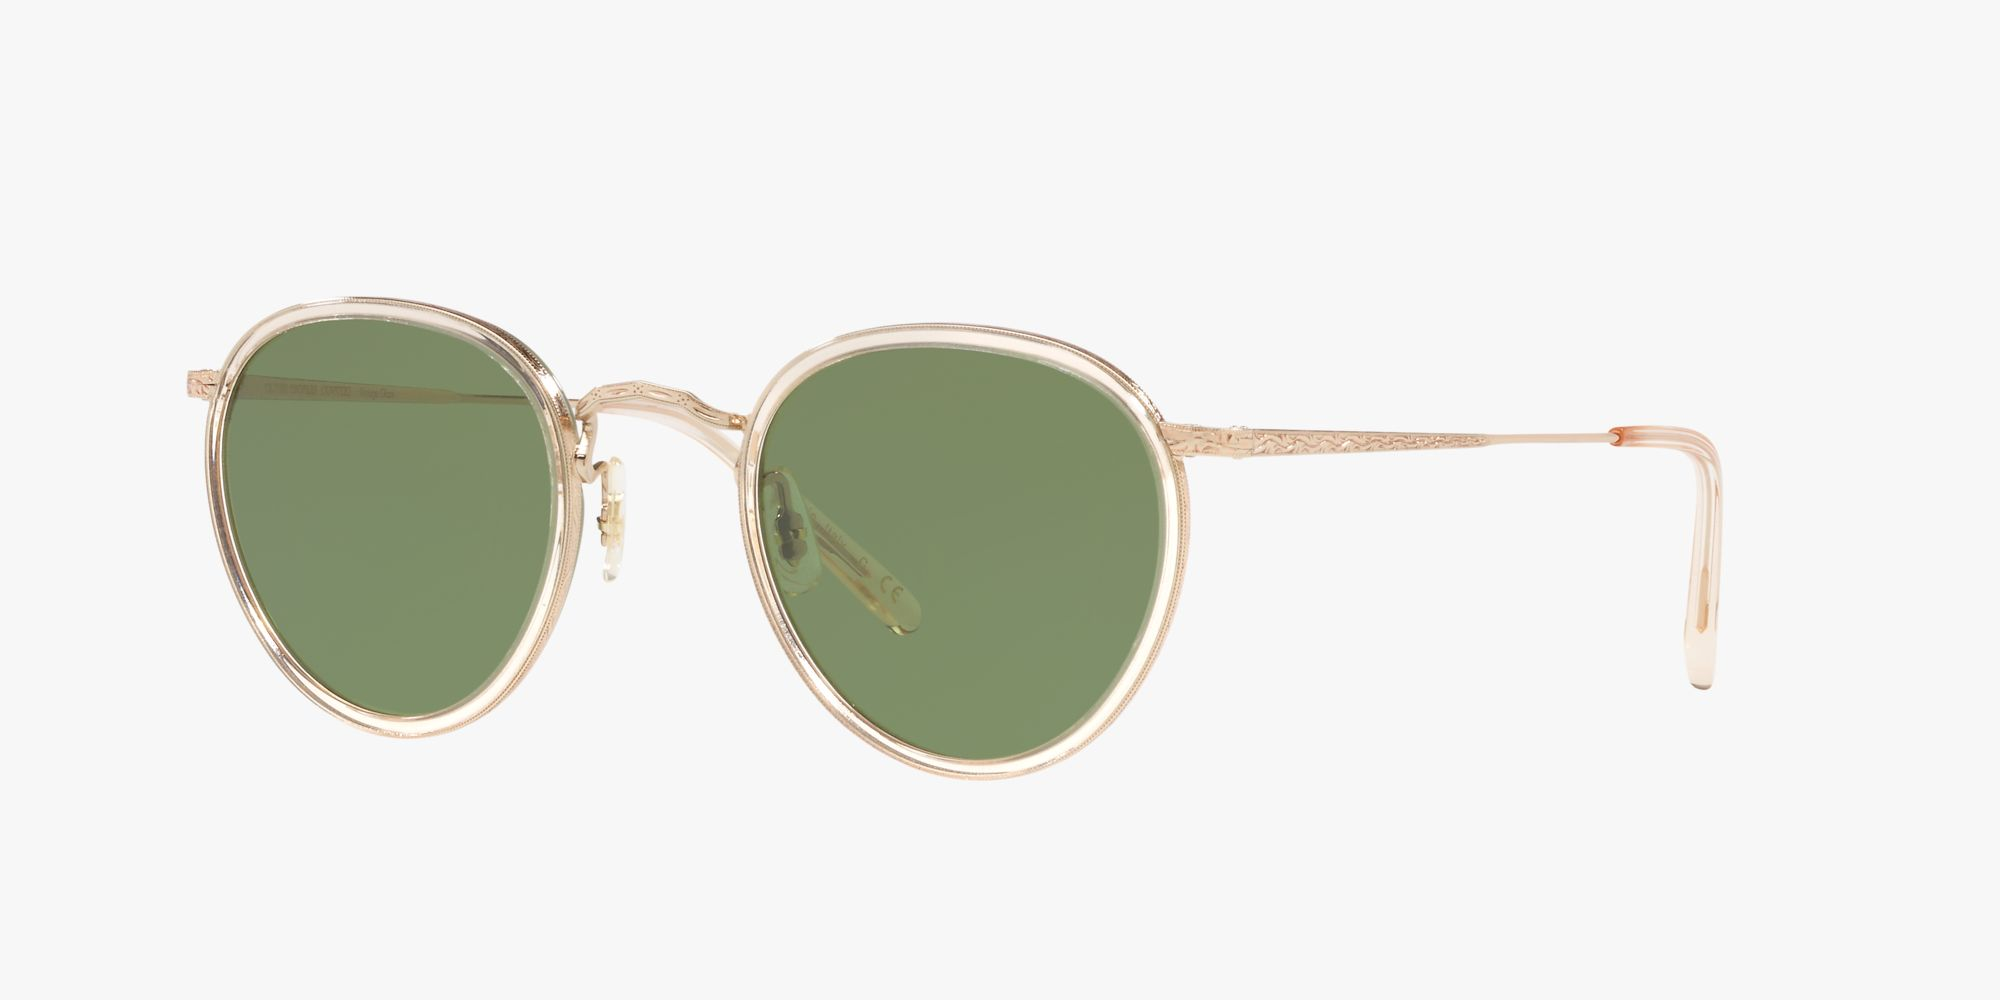 Icons OV1104S - Buff/gold - Green C - Metall | Oliver Peoples ...